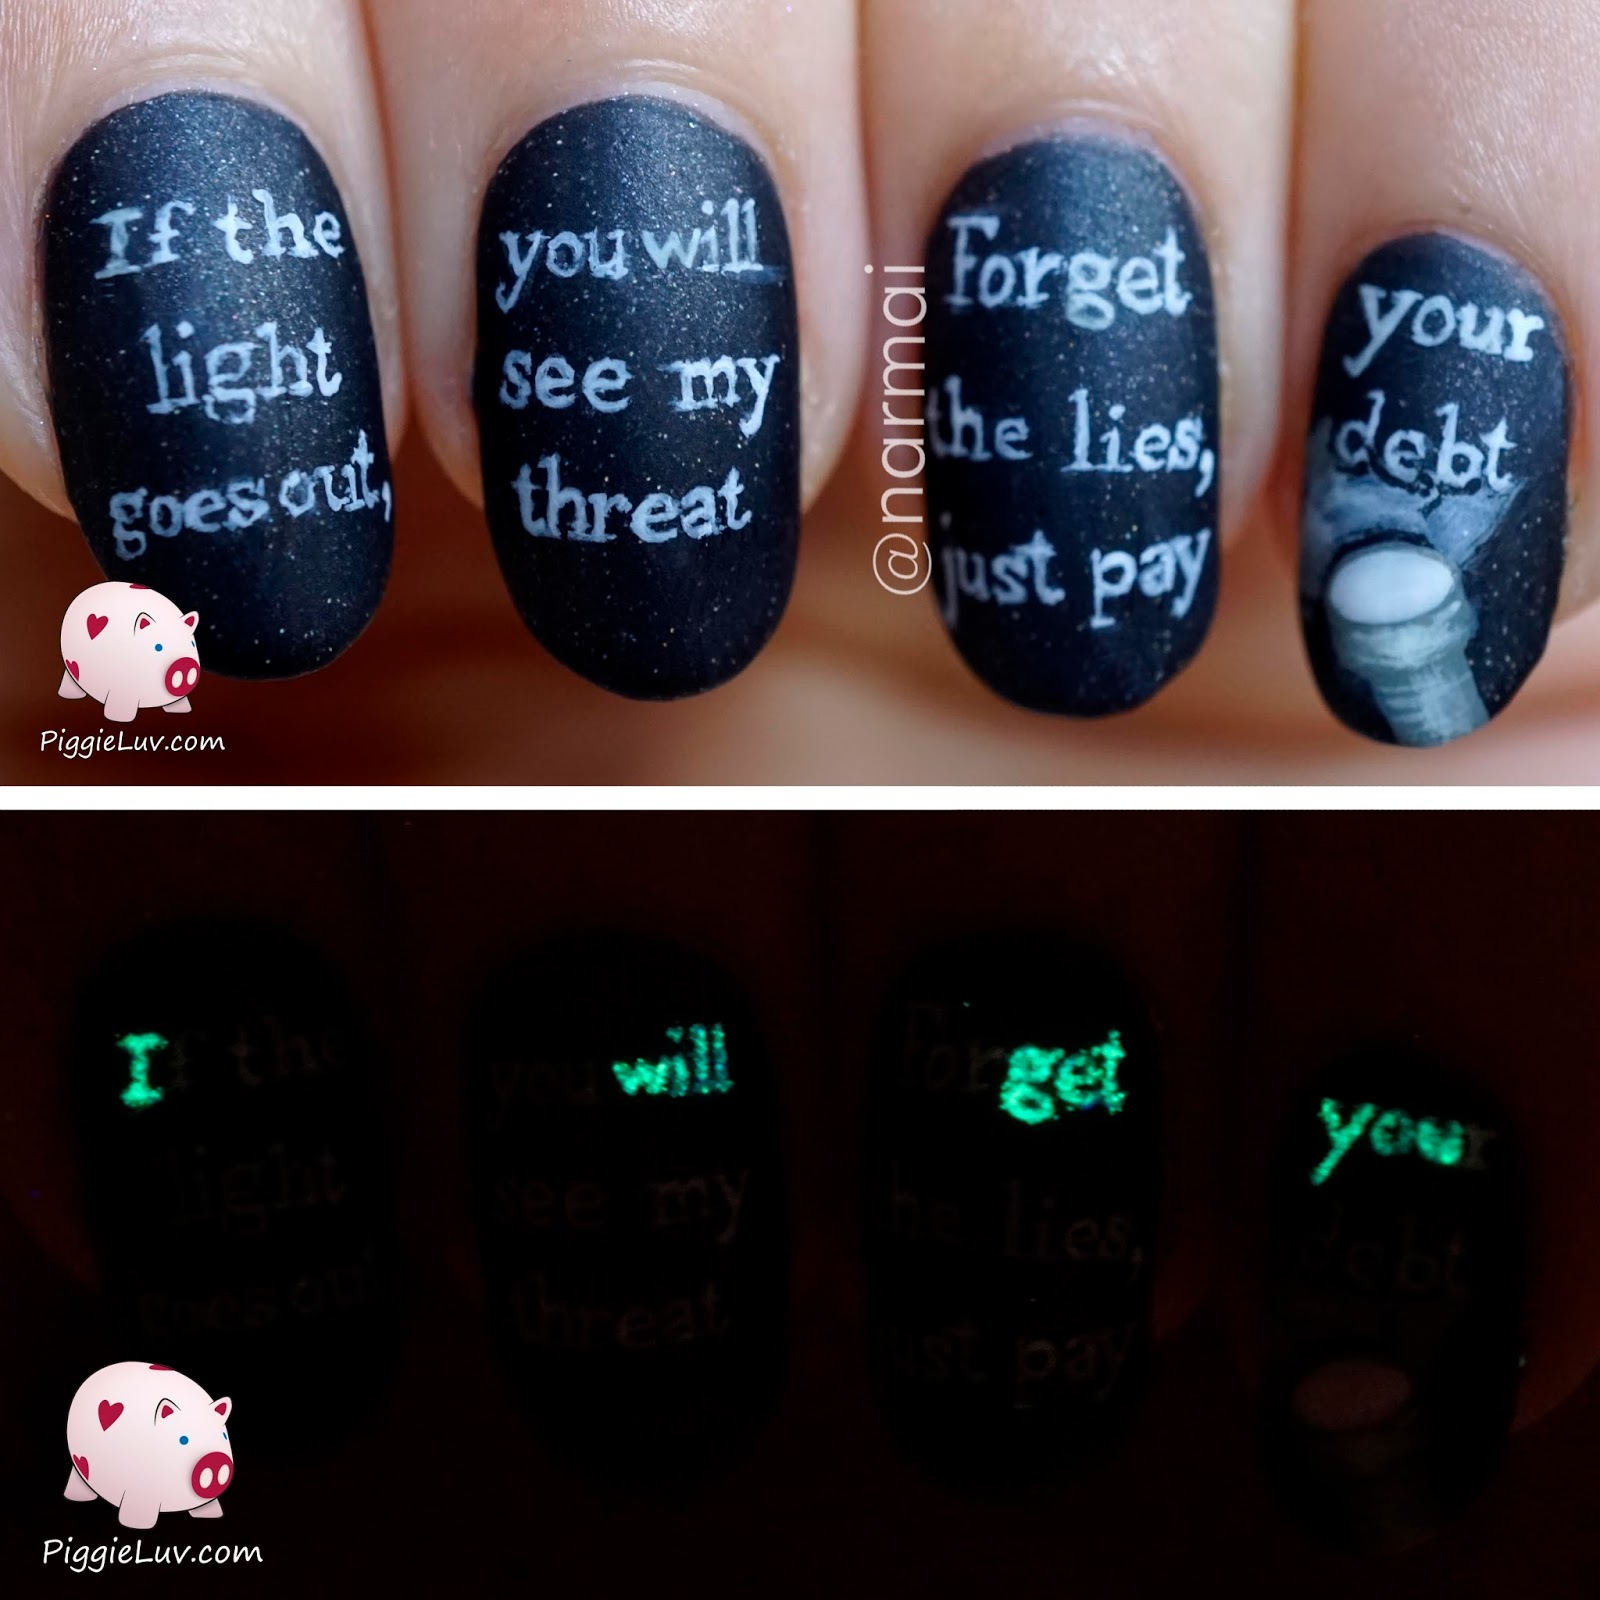 Piggieluv Glow In The Dark Threat Message Nail Art